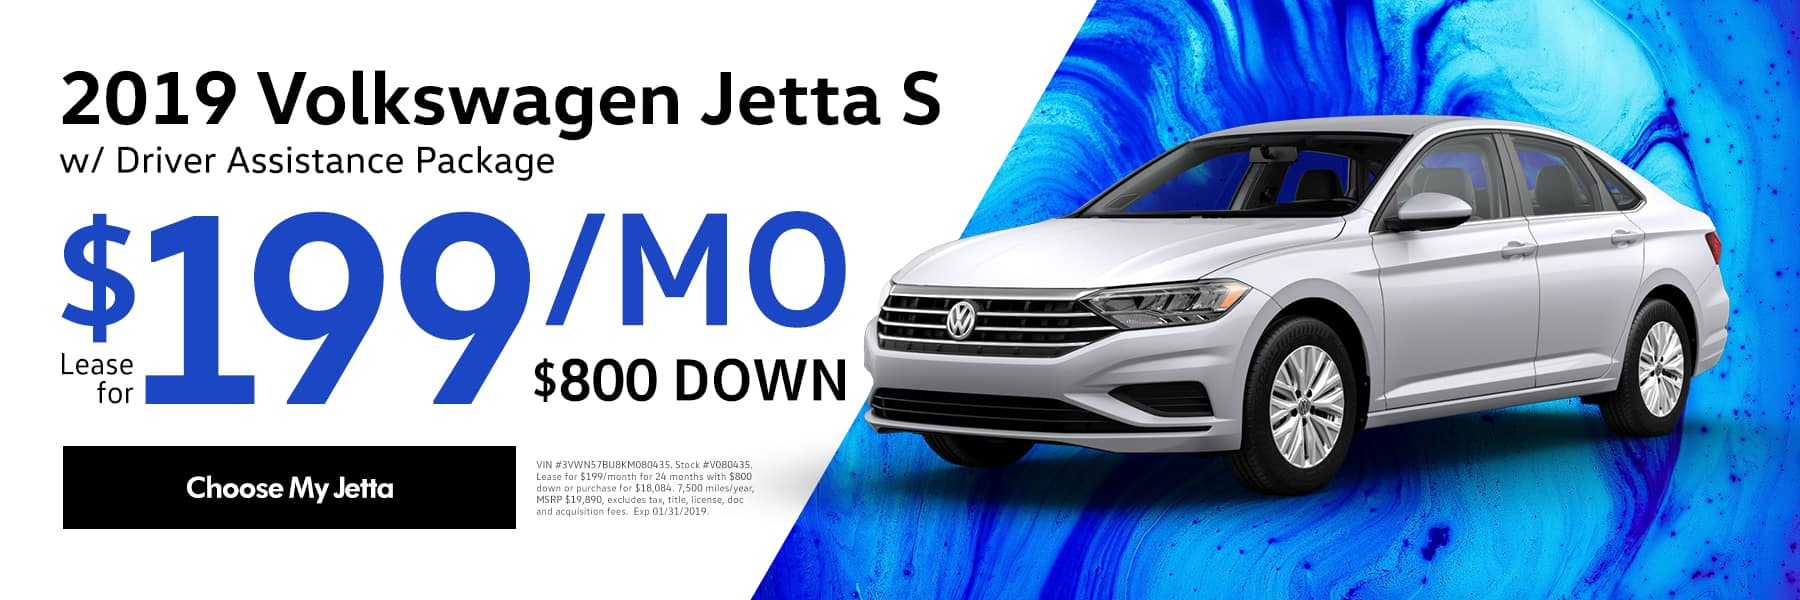 2019 Volkswagen Jetta S w/ Driver Assistance Package - Lease for $199/month with $800 down - Choose My Jetta